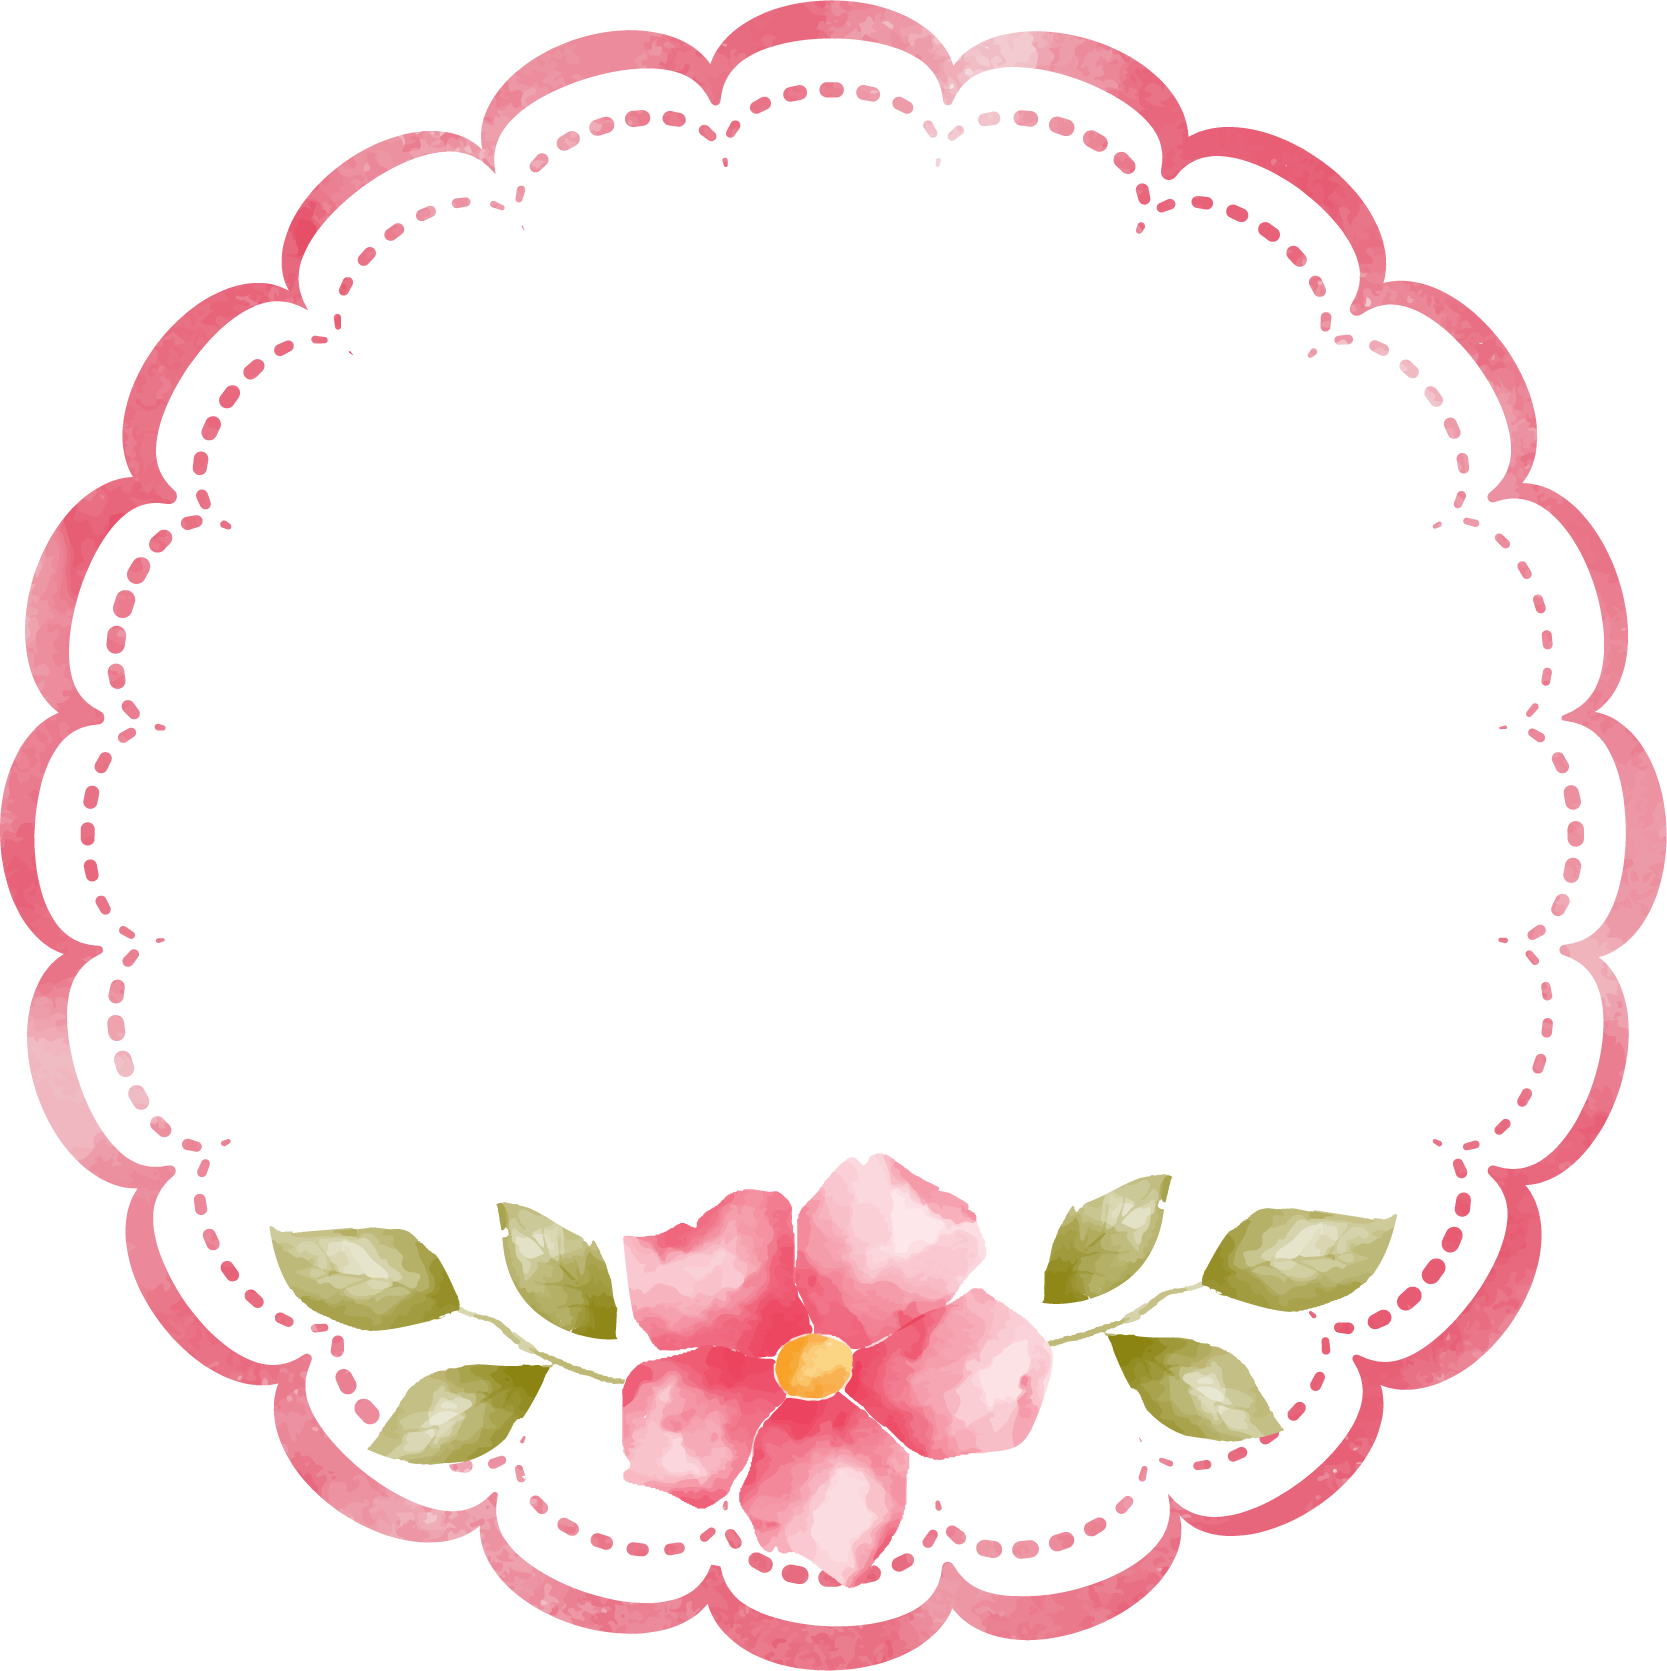 21st century Education Learning Clip art - floral frame 1667*1671 ... clip art library library